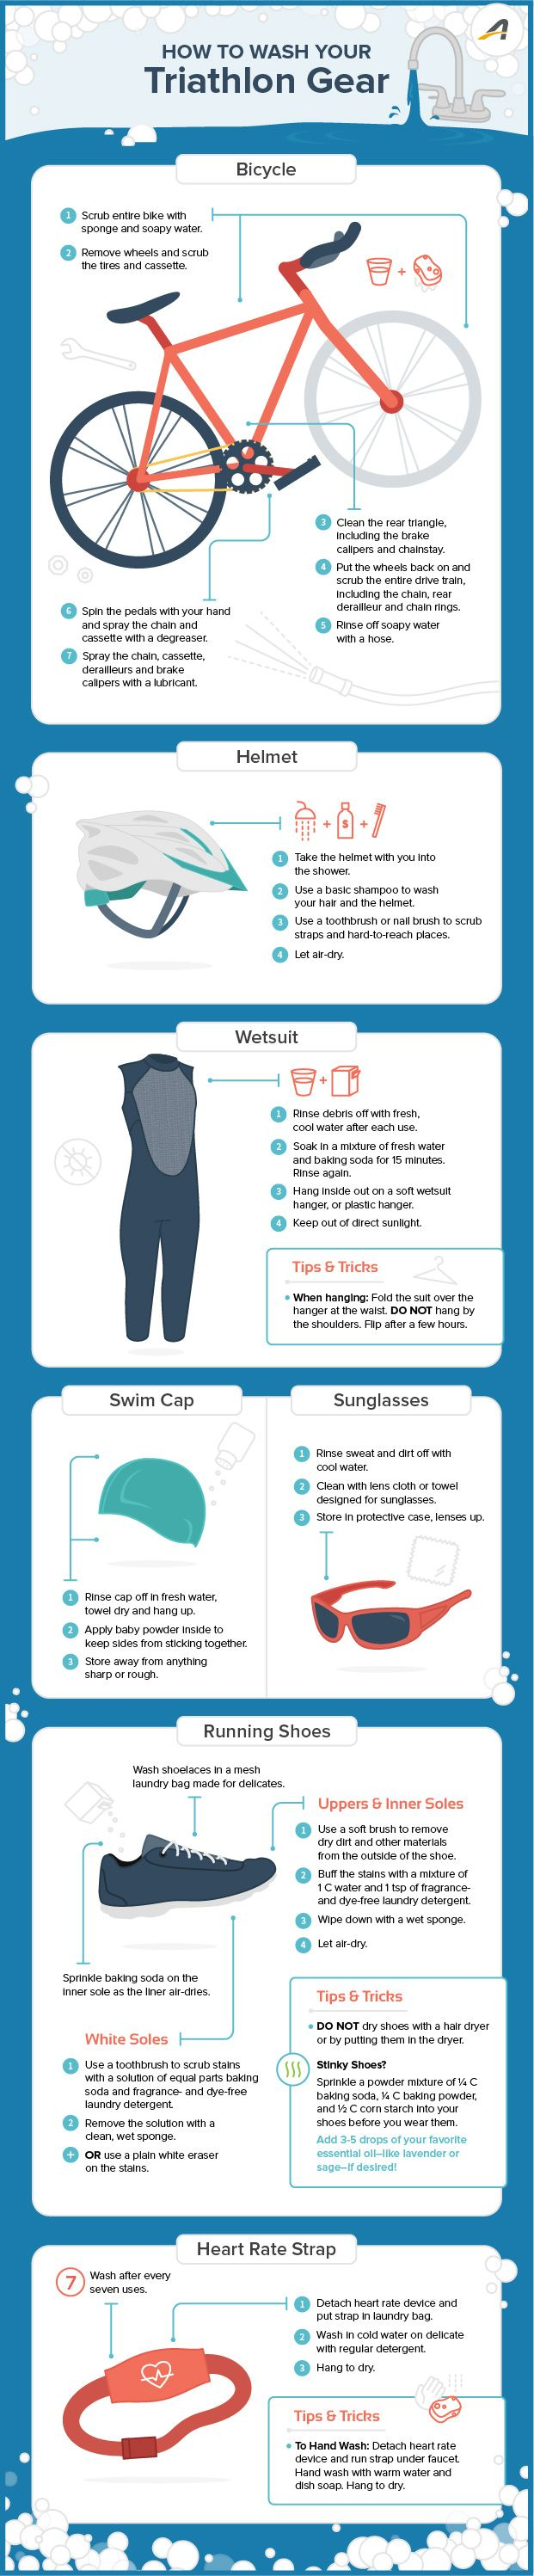 Infographic on how to wash your triathlon gear.